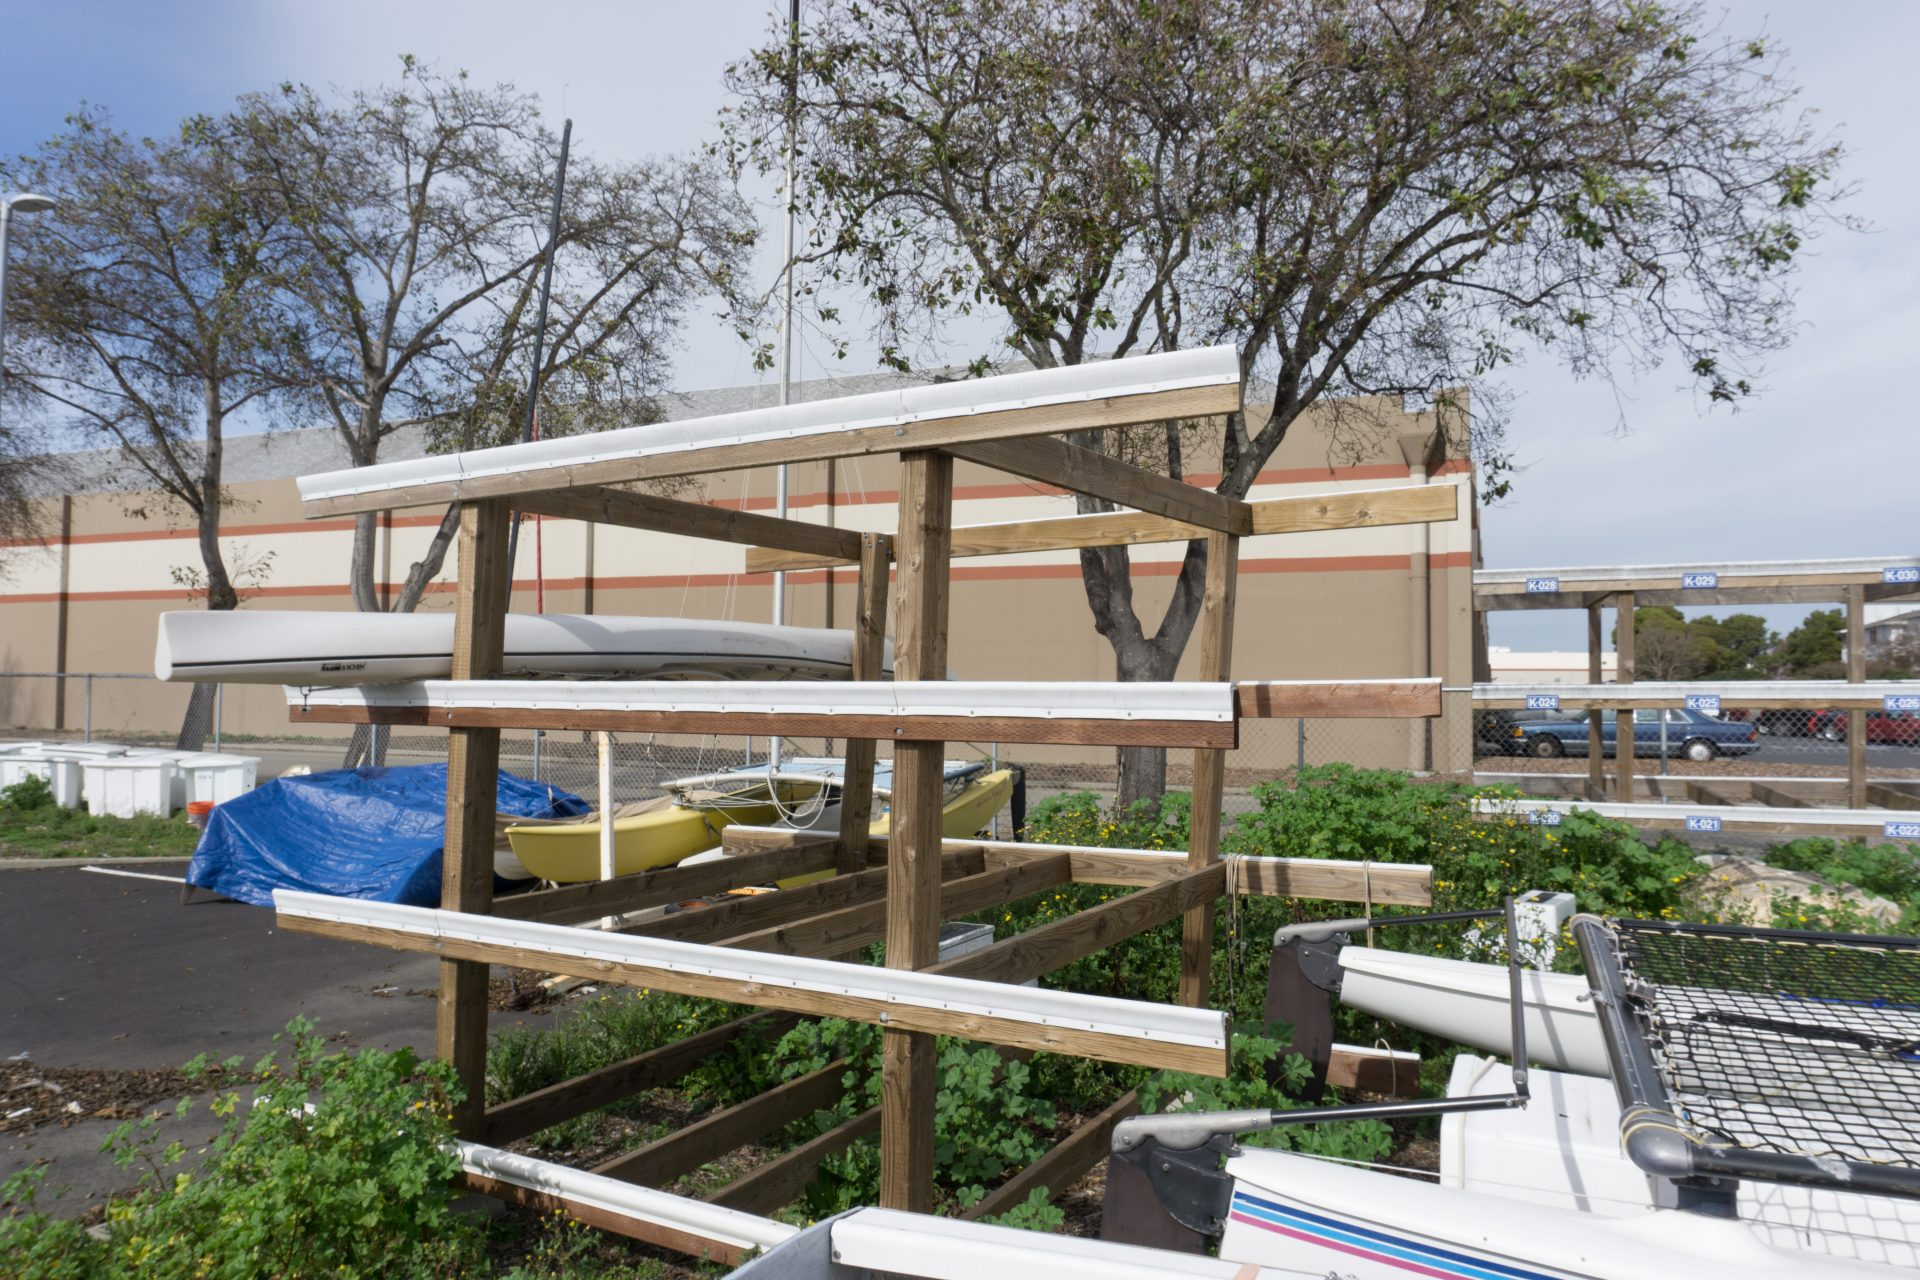 wooden racks for kayaks and other boats